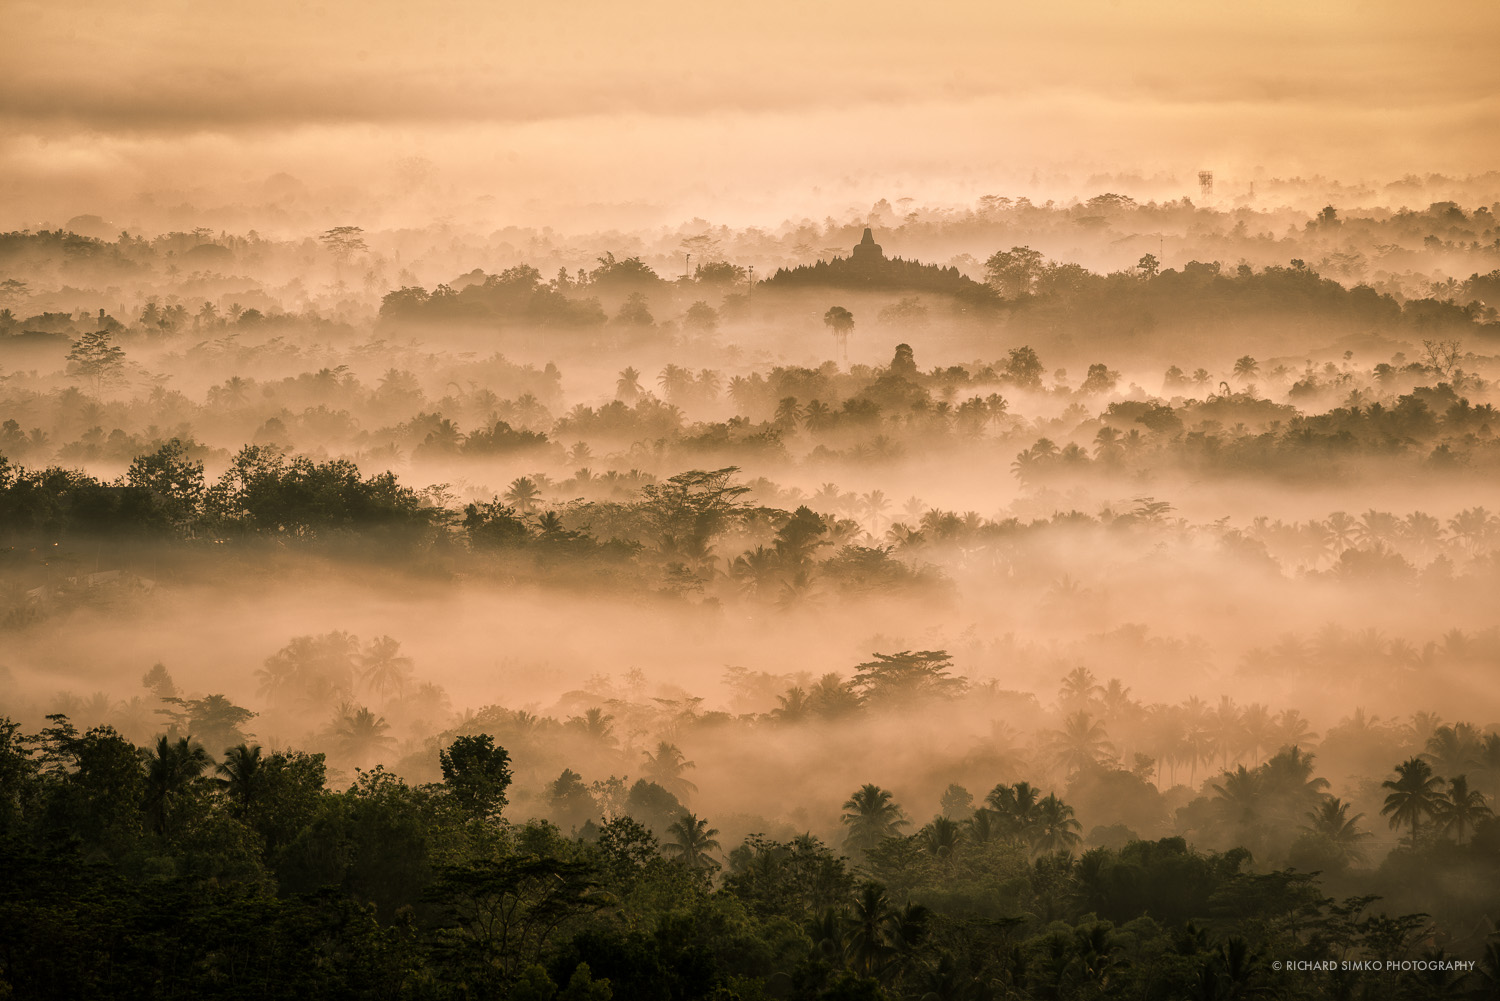 Mornings in the area of Borobudur temple are usually very hazy.